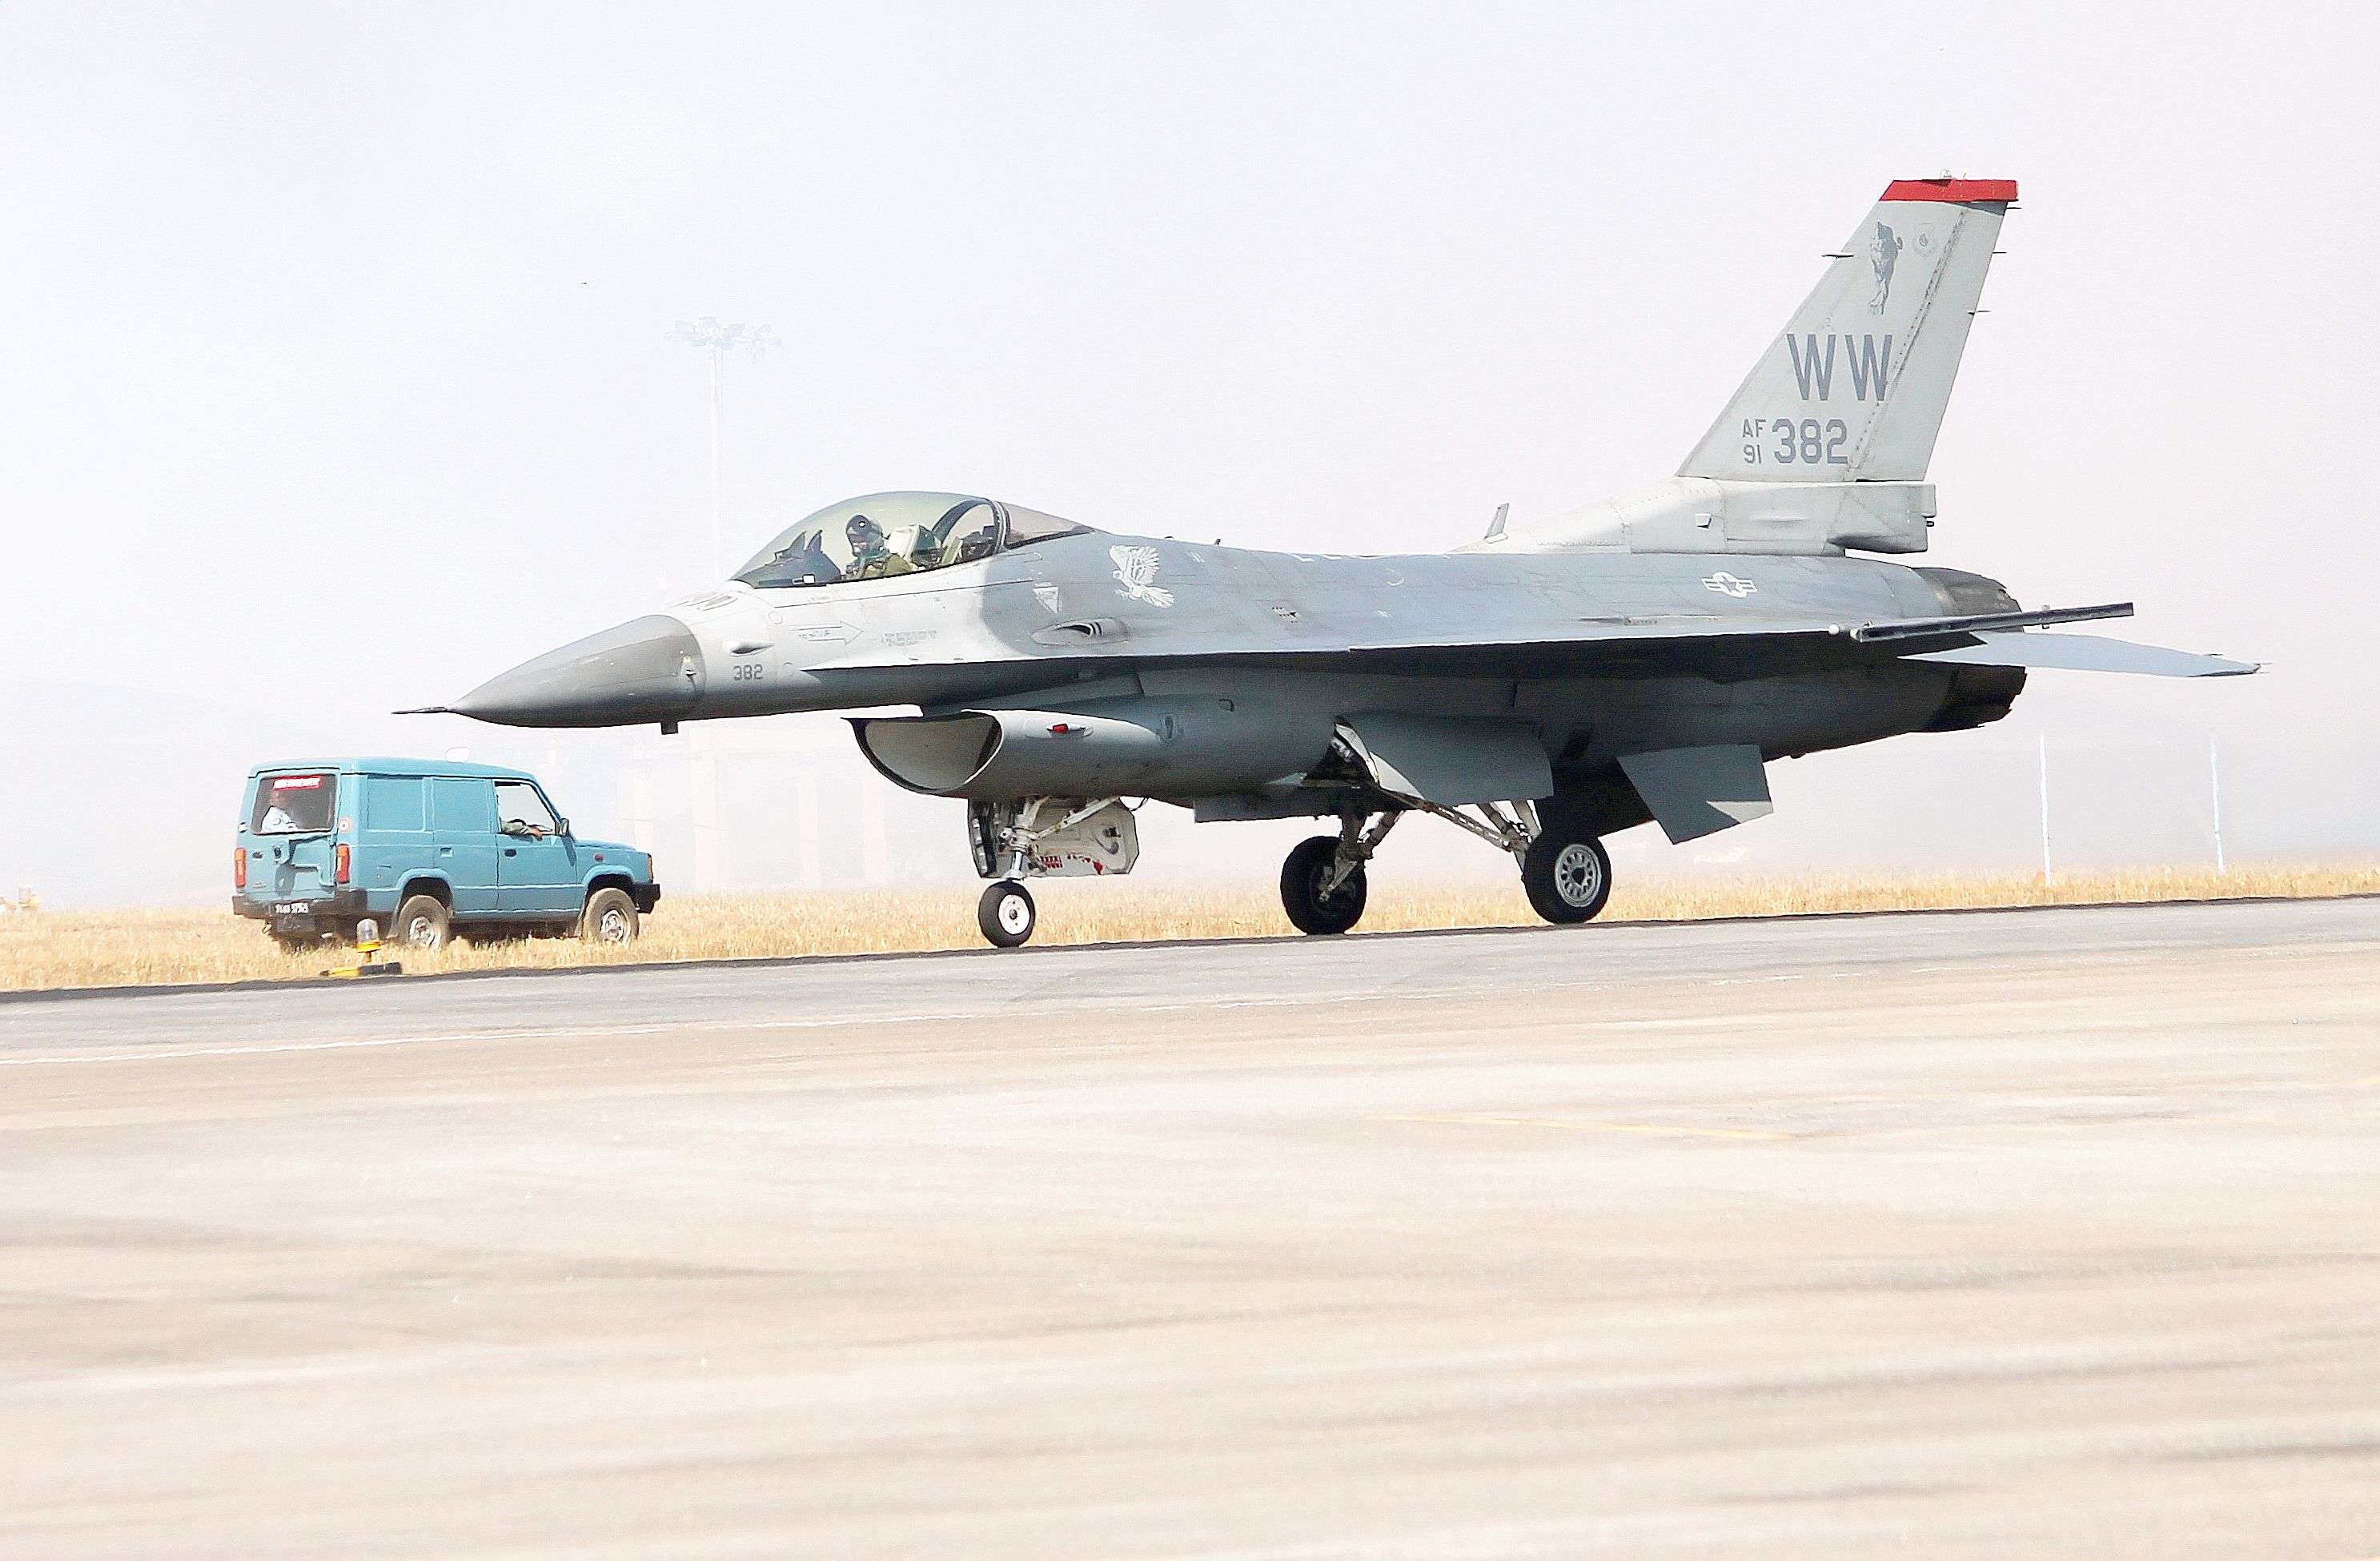 F16 fighter jet: Lockheed Martin to start producing 'made-in